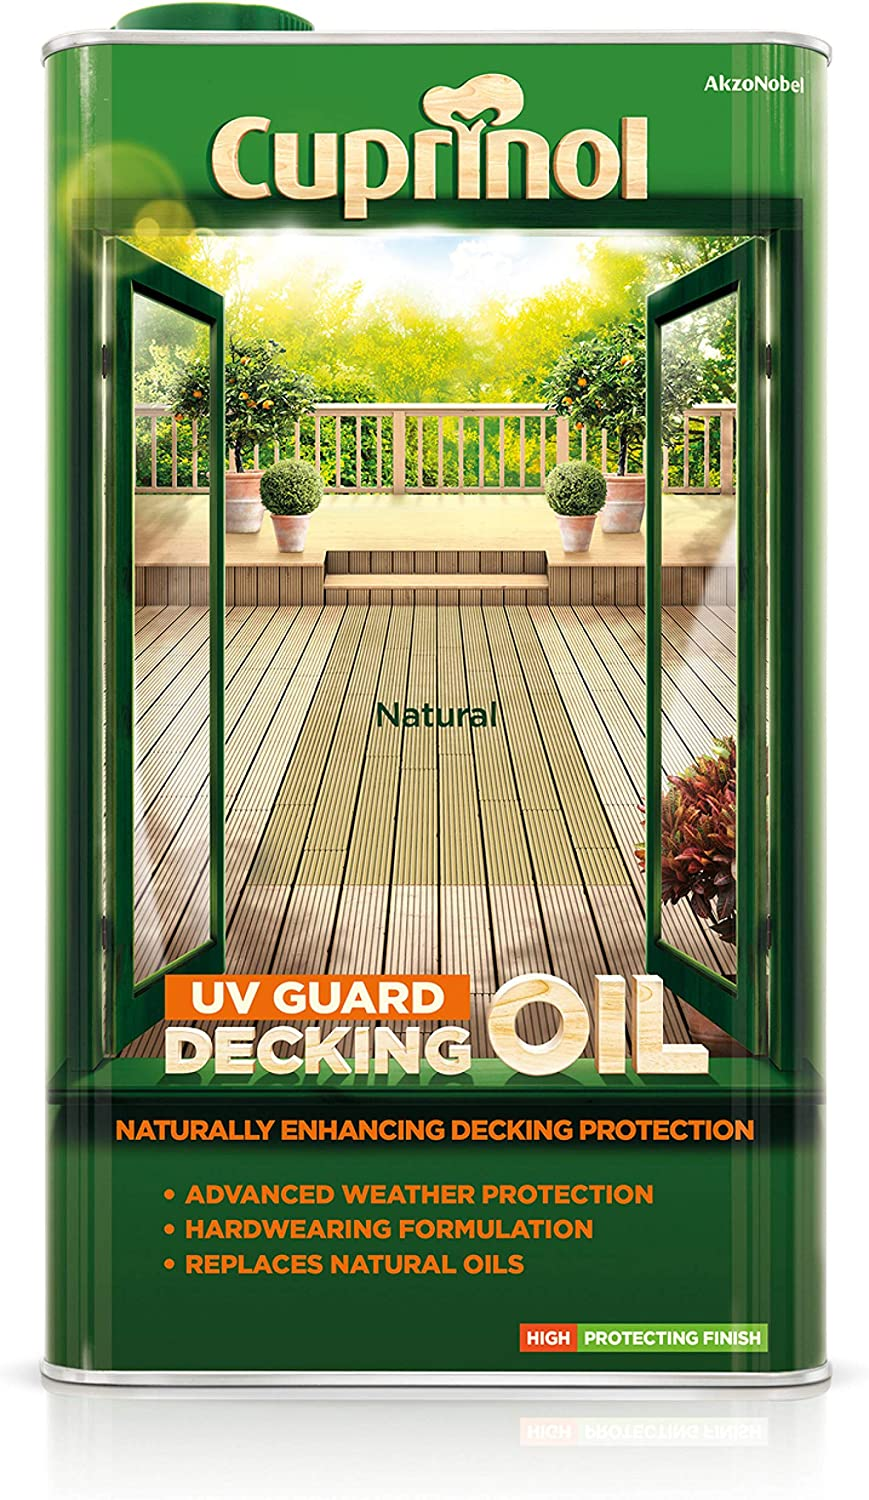 Cuprinol UV Guard Decking Oil 5 L 5 L, Natural, Al agua, 6 h, Dependent on the nature of the surface and the weather conditions, 8 m/²//L Aceites de acabado para madera